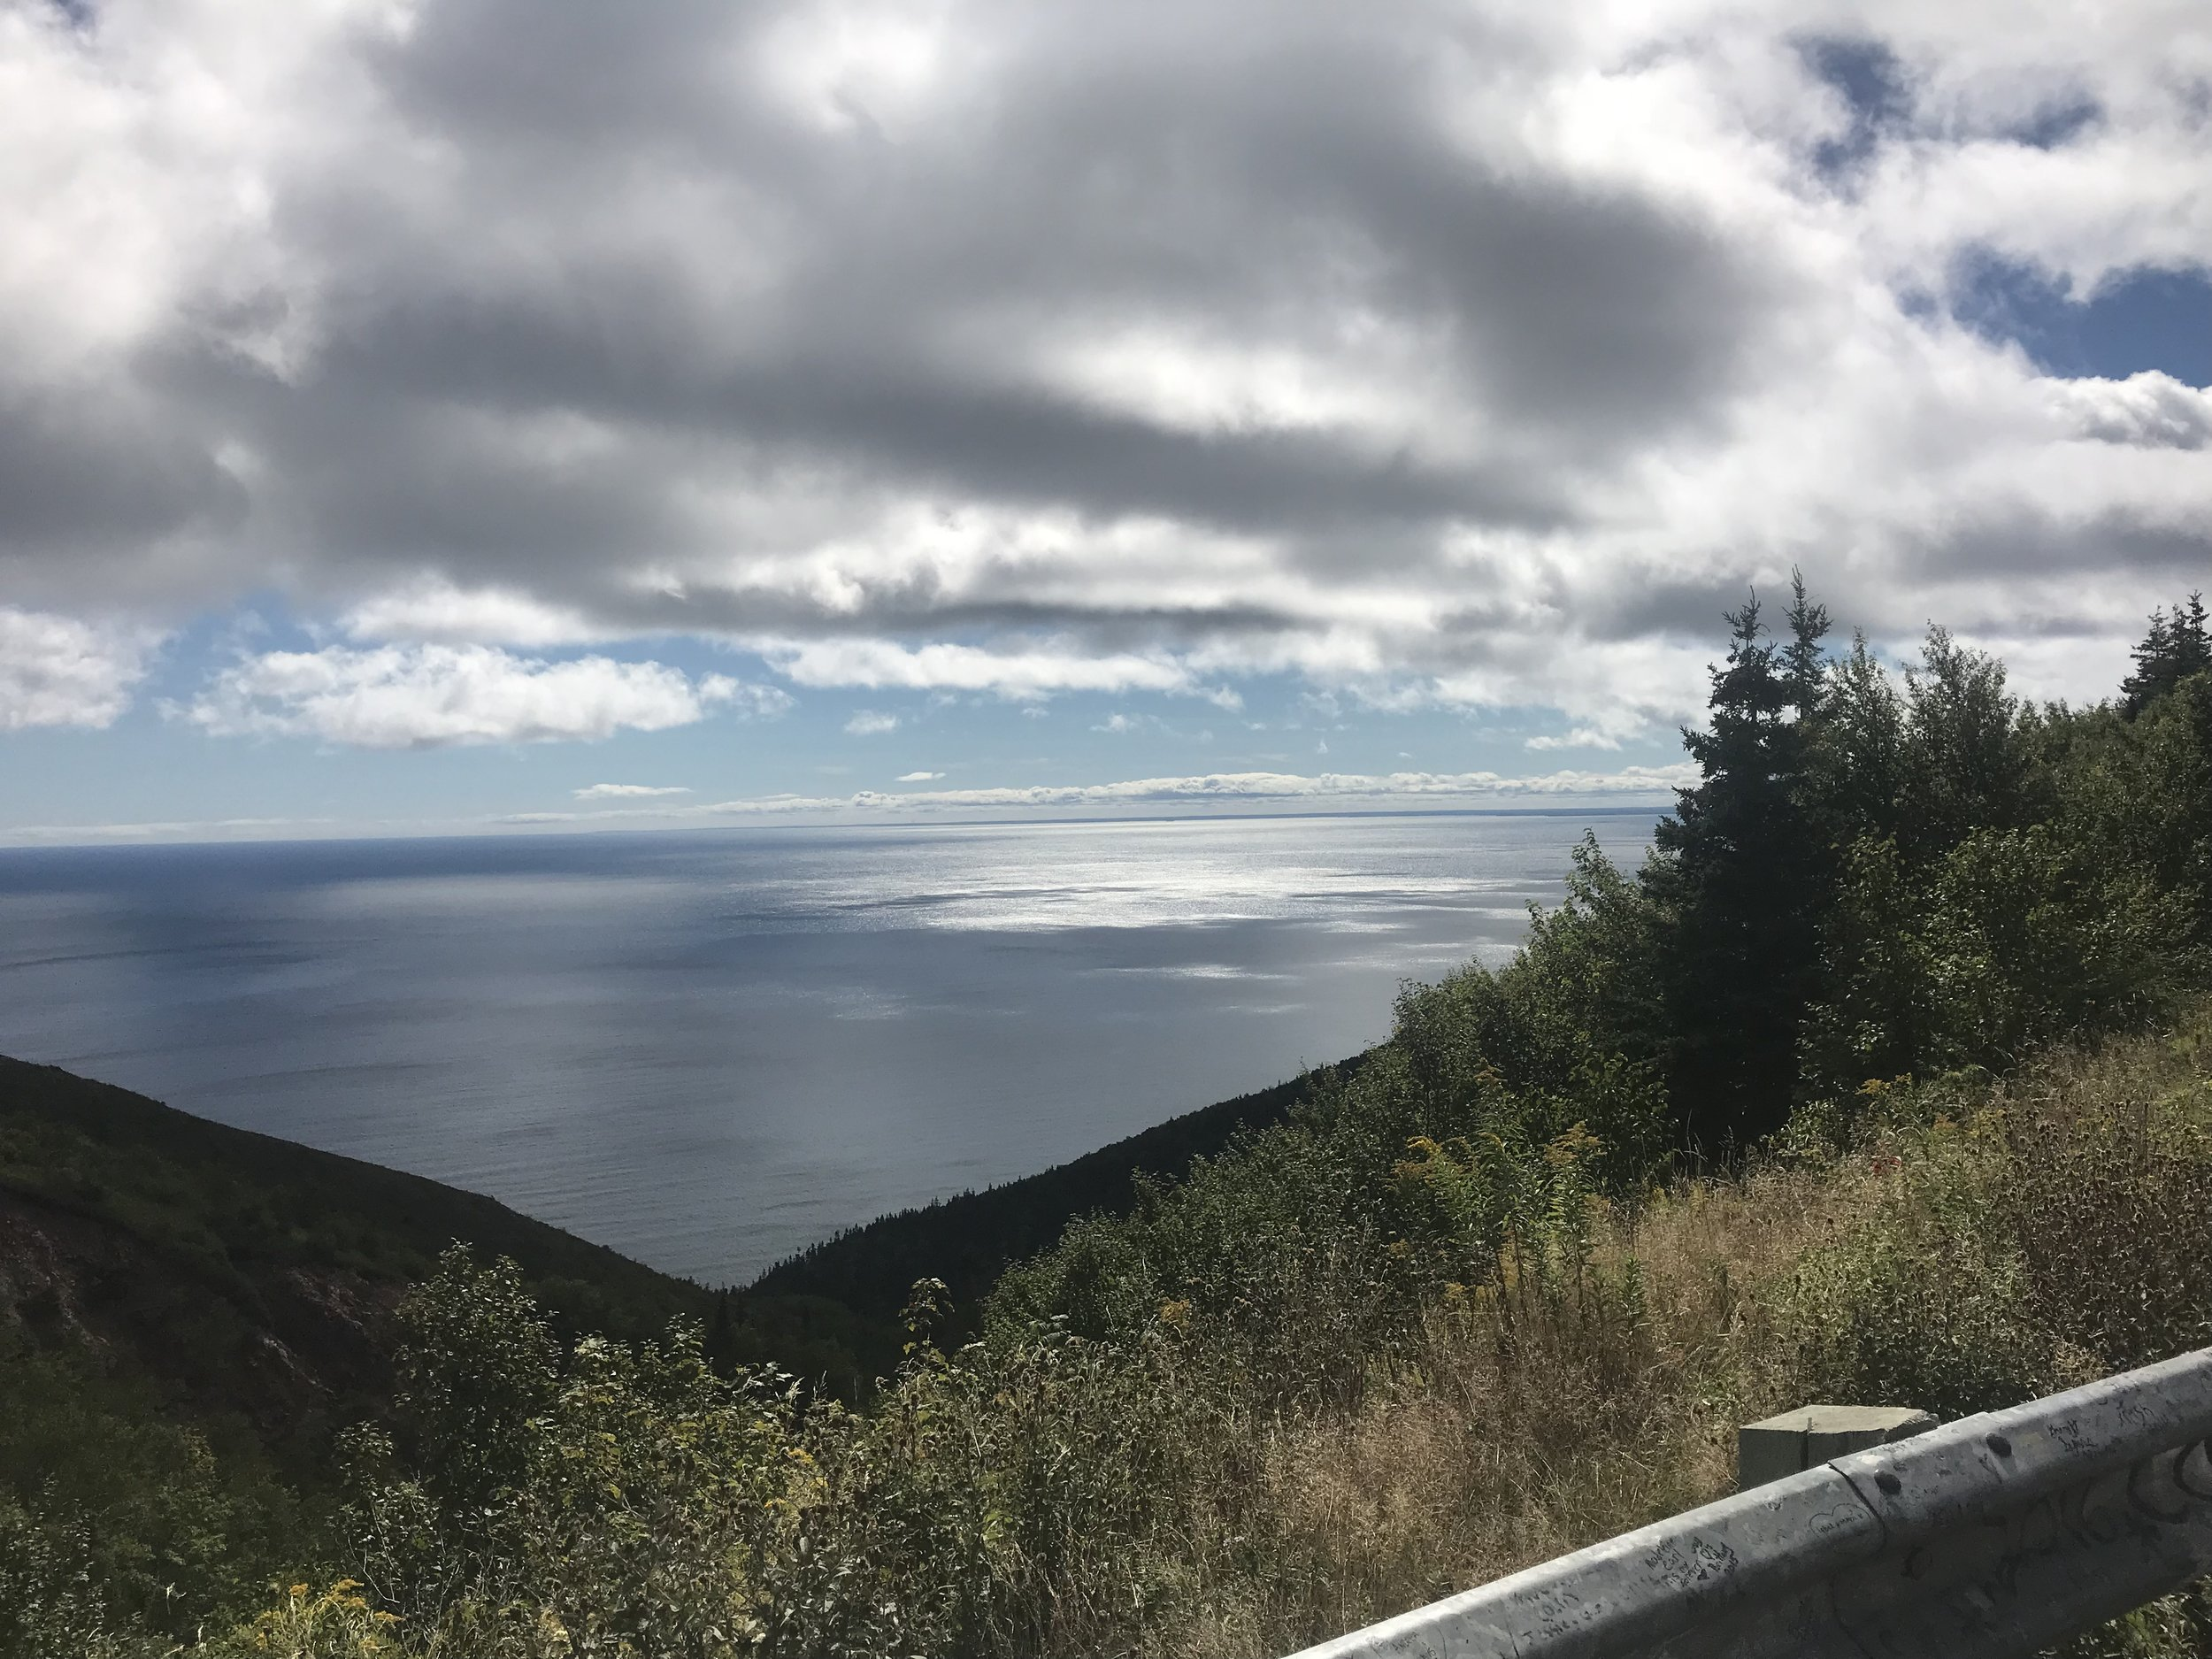 View from the Cabot Trail